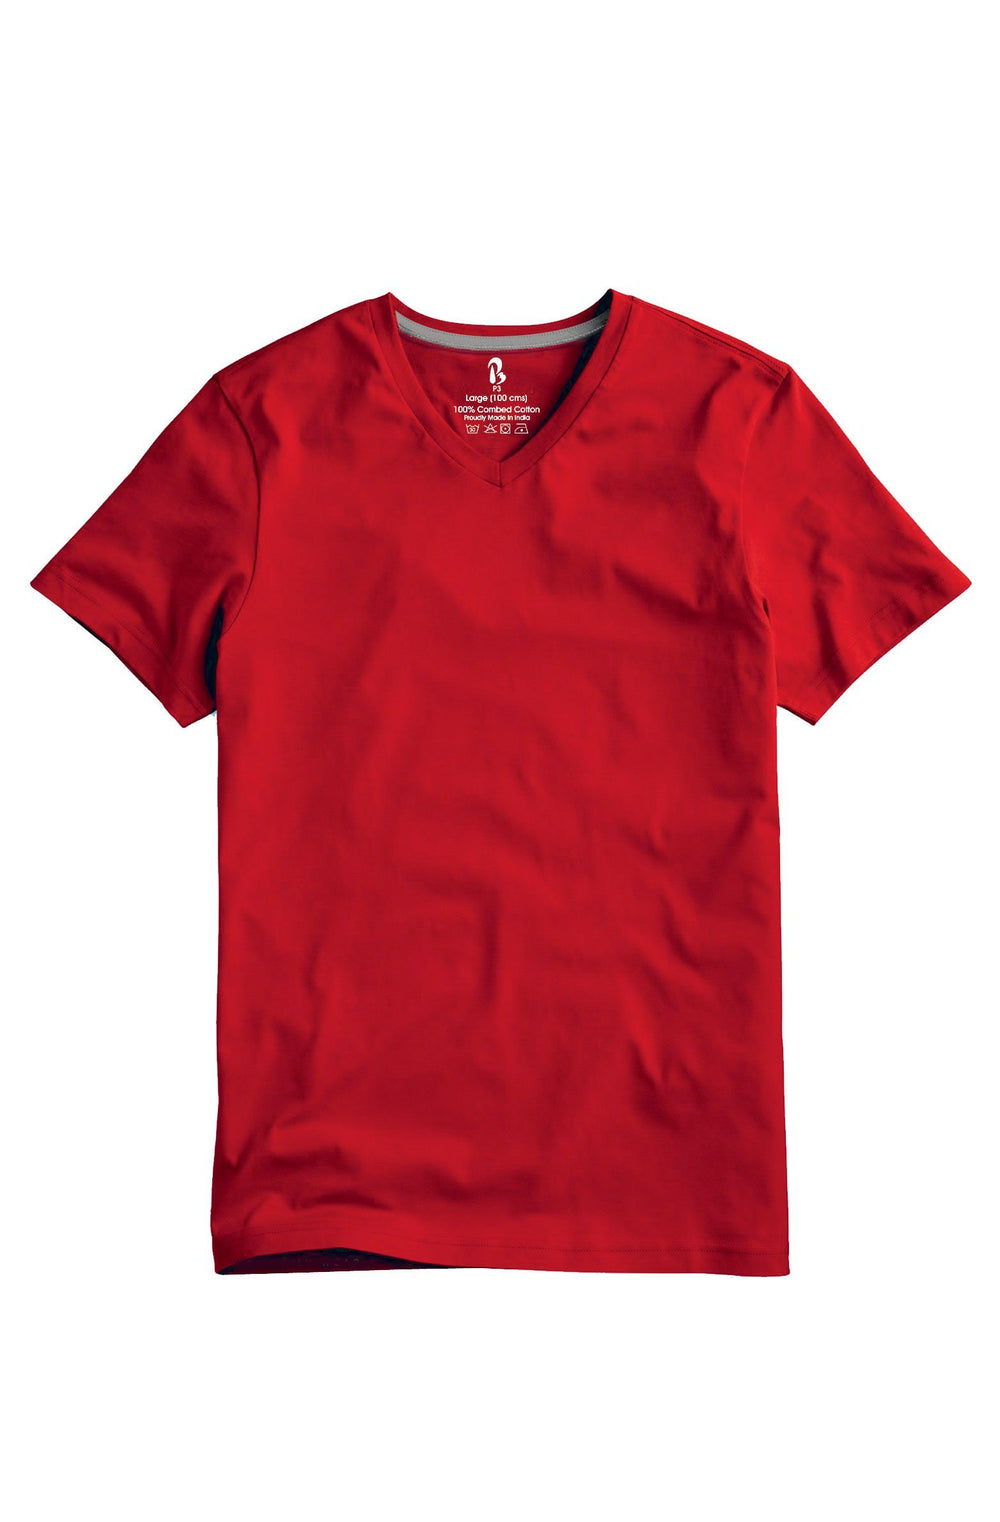 Jester Red V-Neck Tee (MRP inclusive of all taxes) V Neck T-Shirt P3